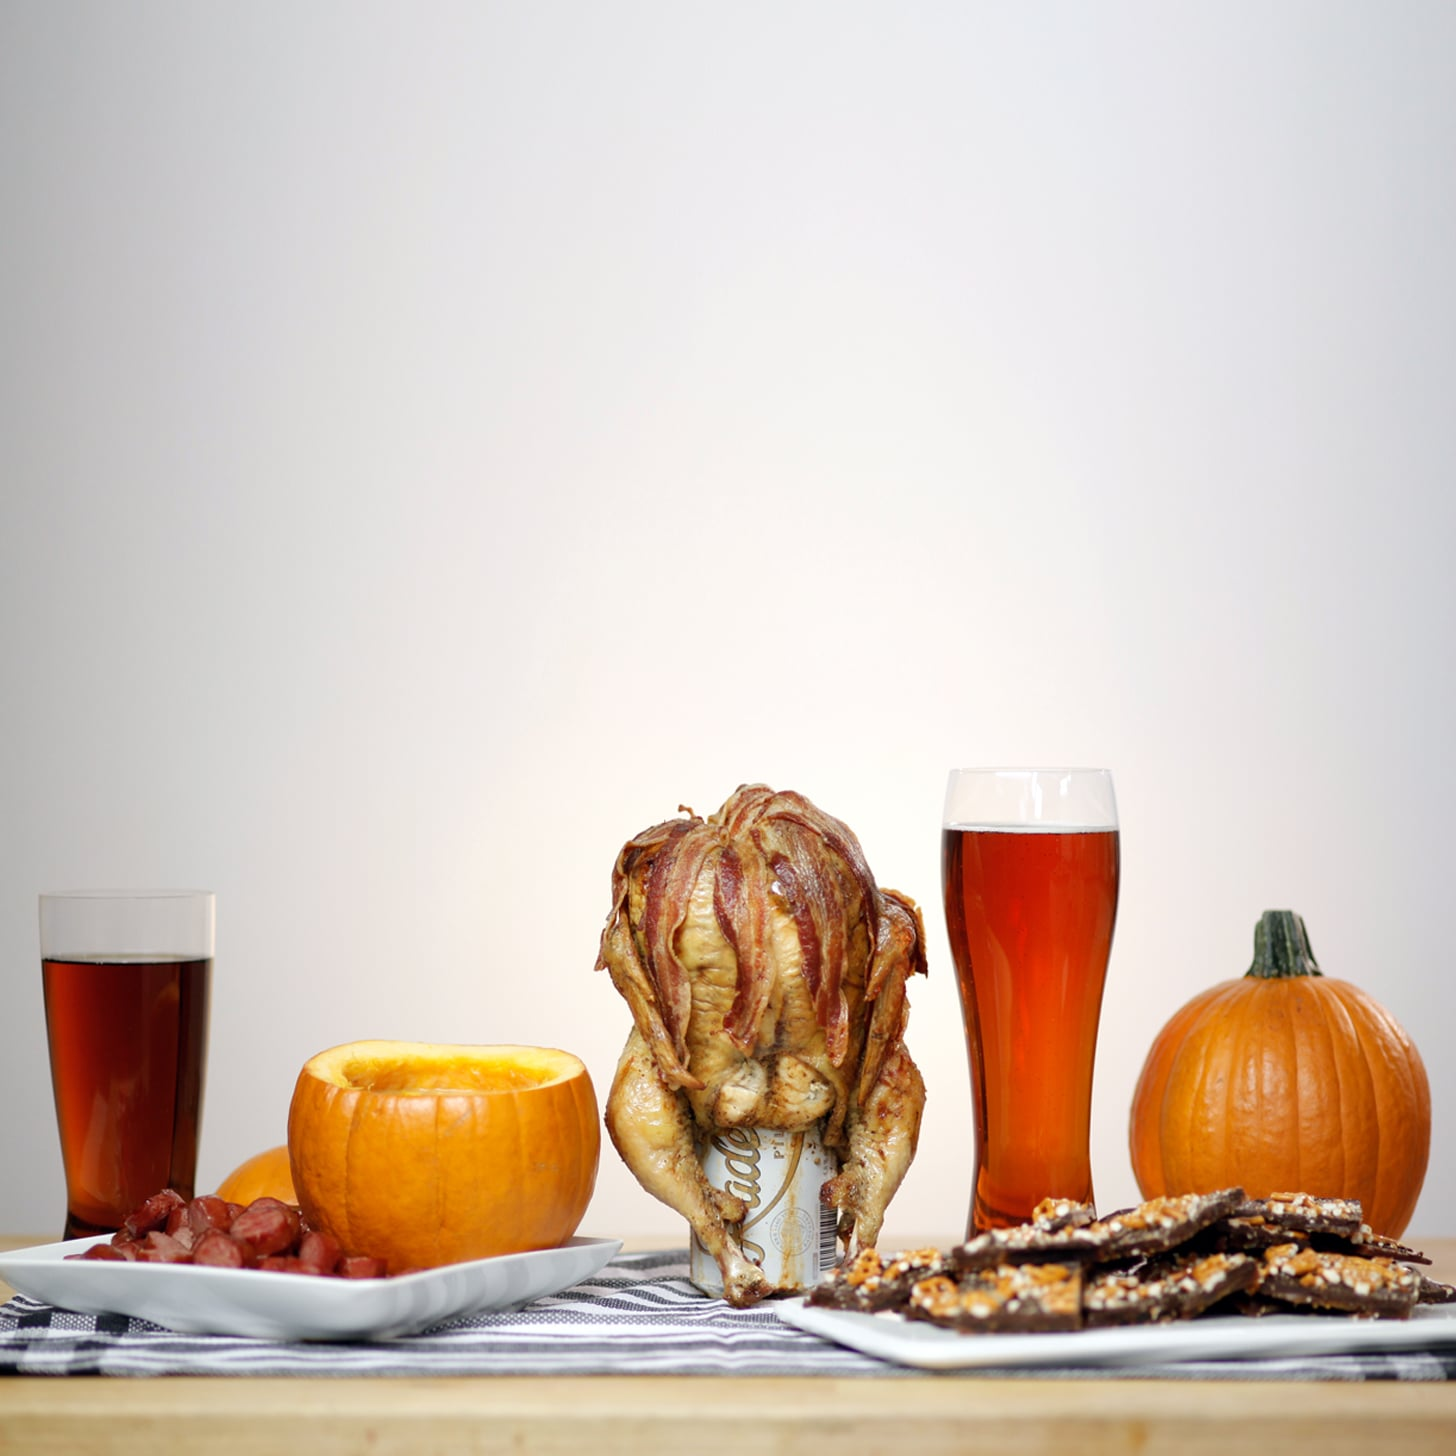 Recipes using beer video popsugar food forumfinder Image collections